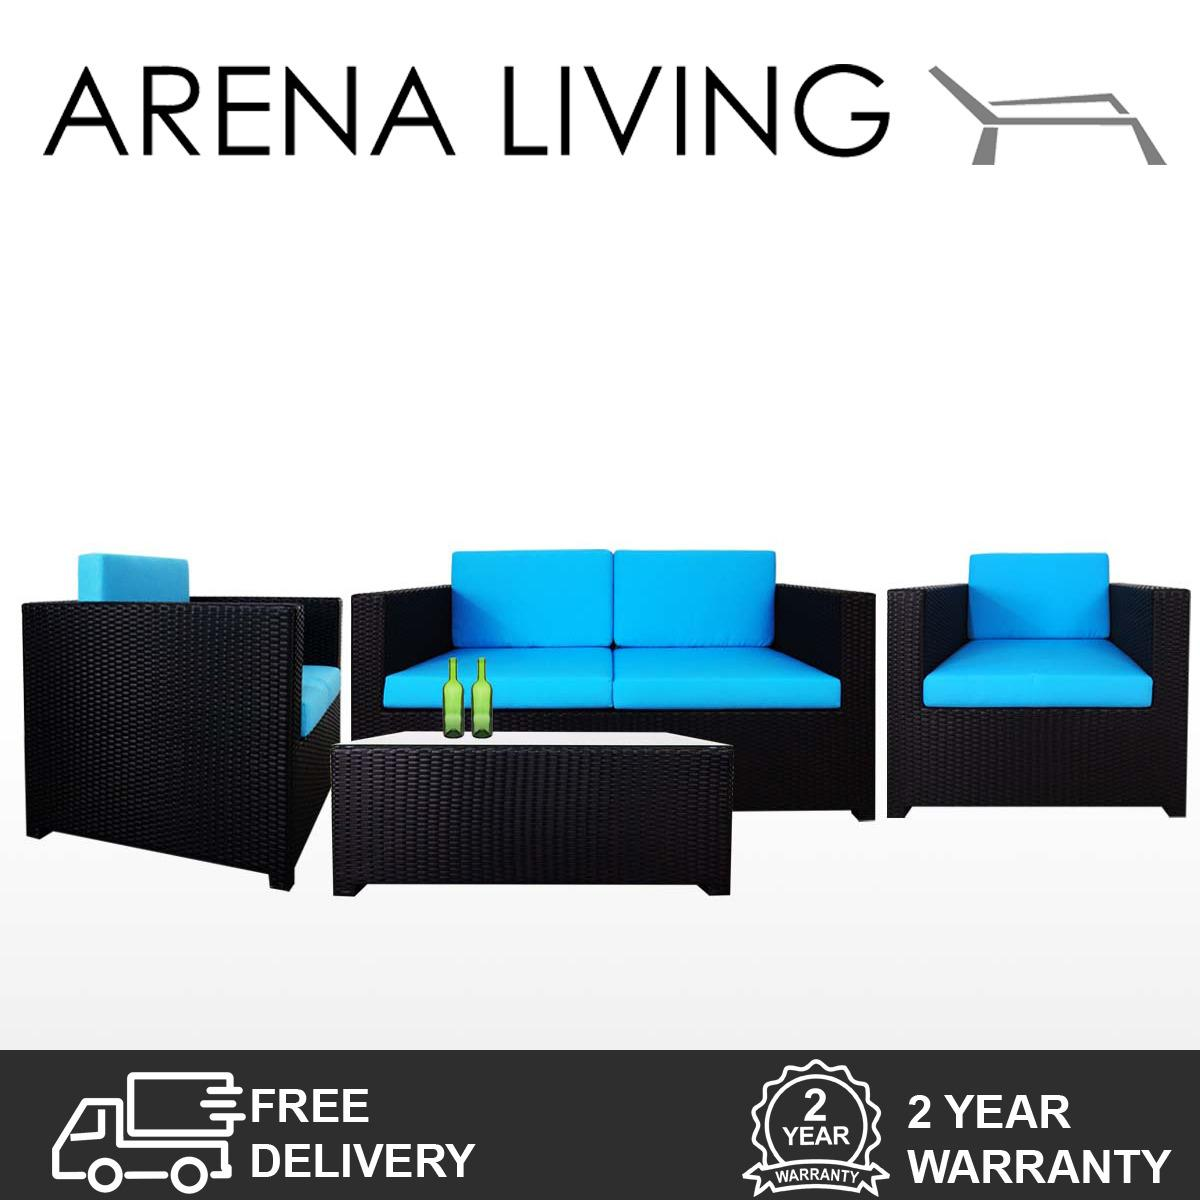 Fiesta Sofa Set Ii Blue Cushions Outdoor Furniture By Arena Living™ Lower Price